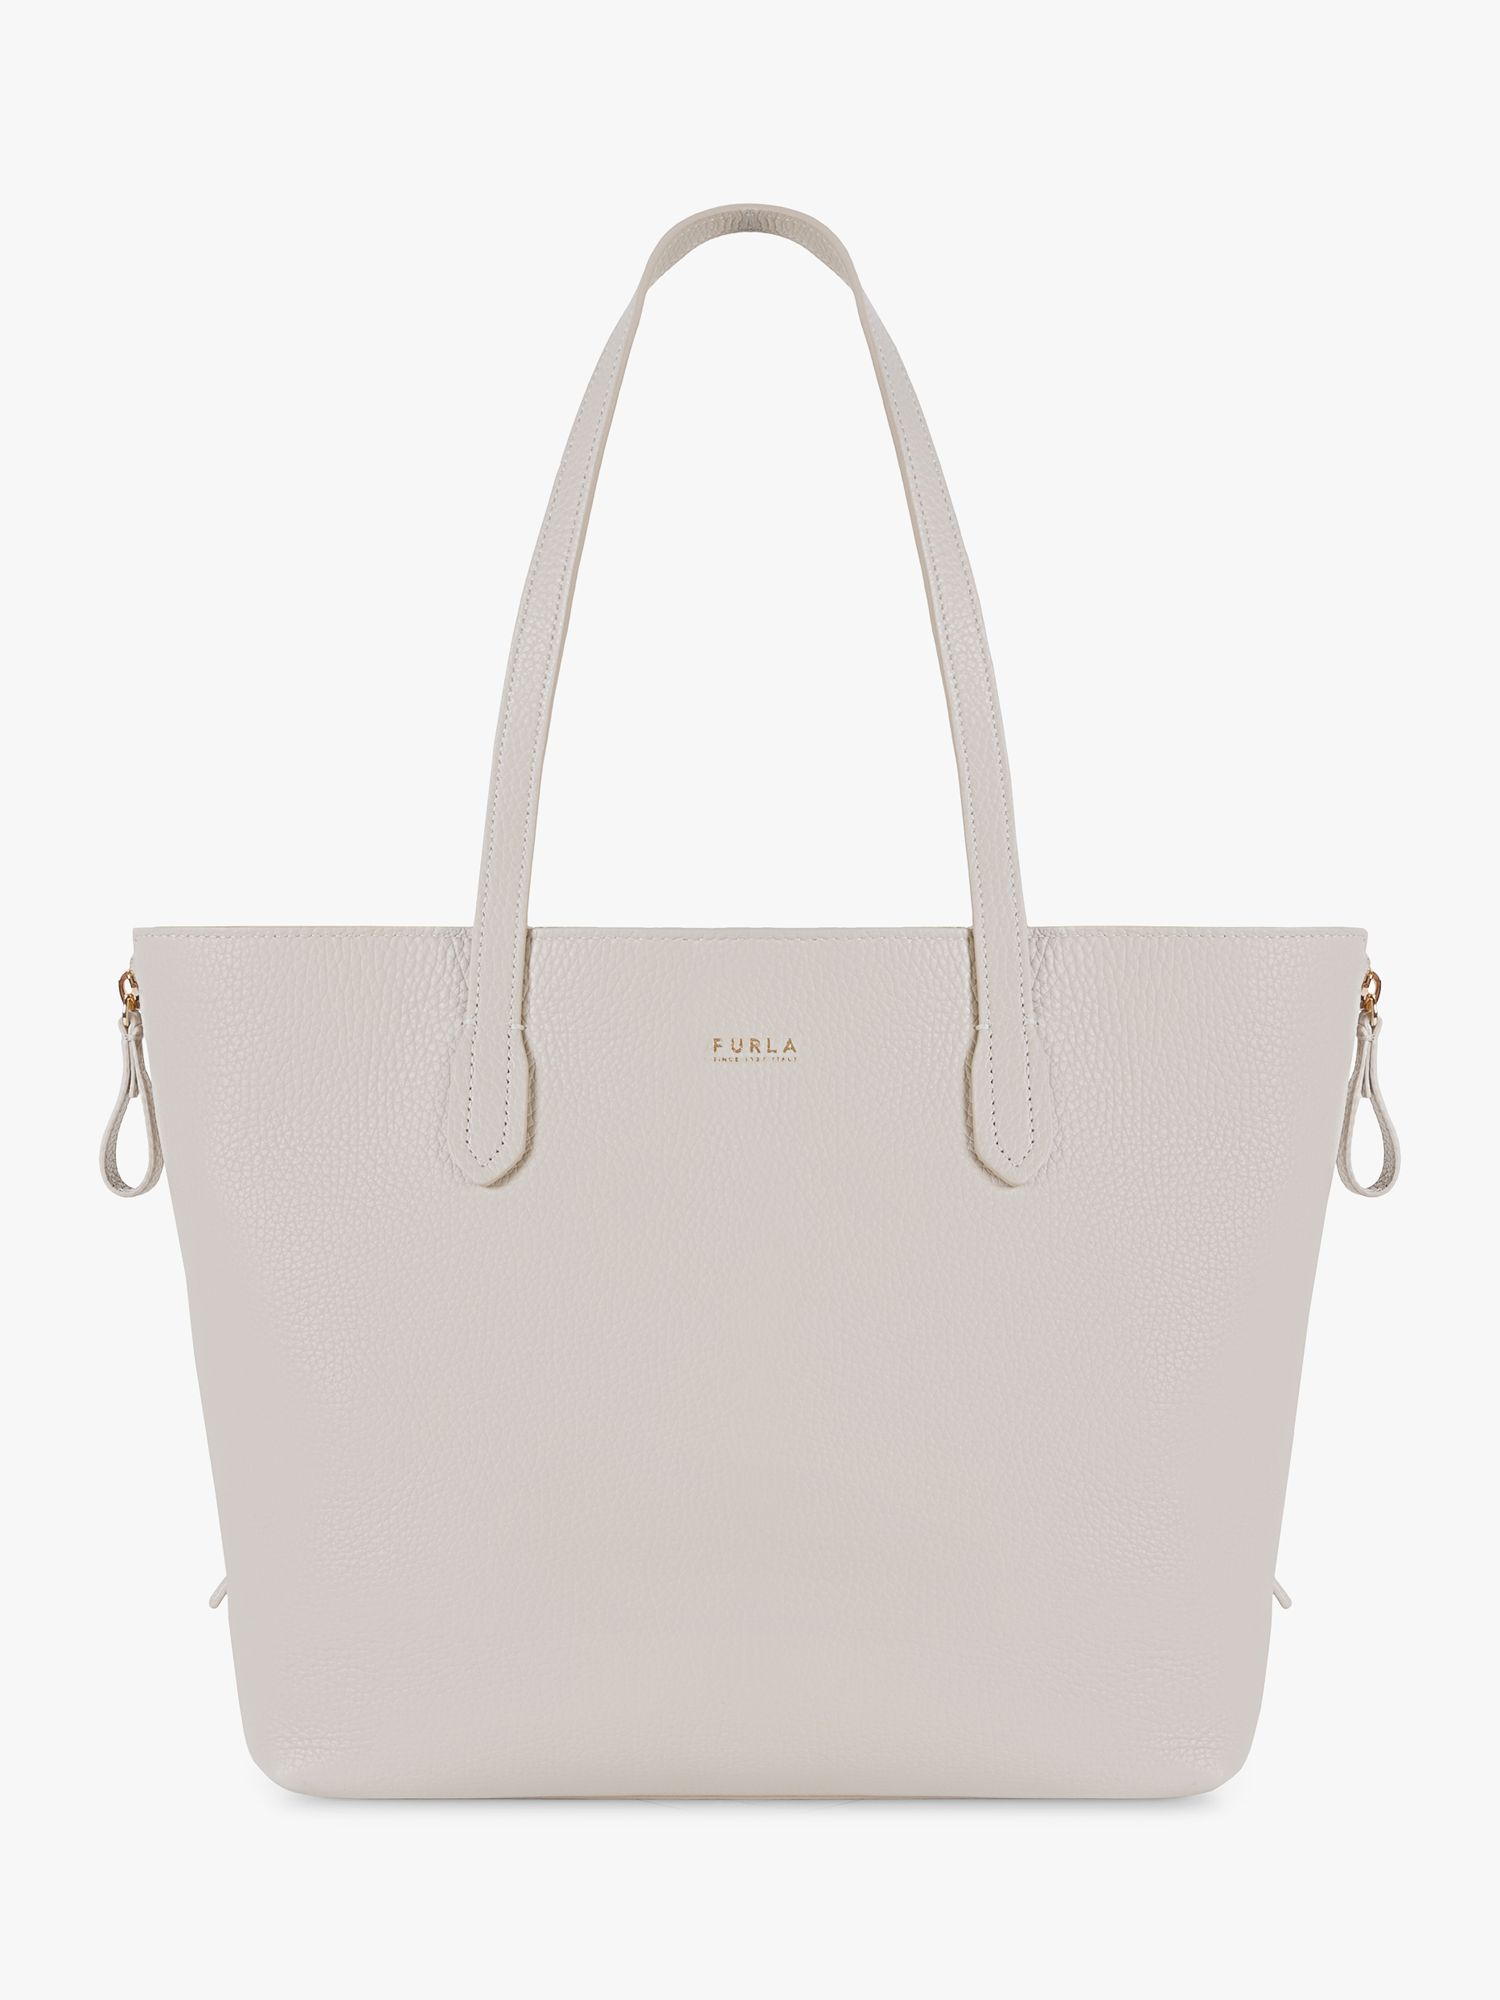 Furla Furla Luce Leather Tote Bag